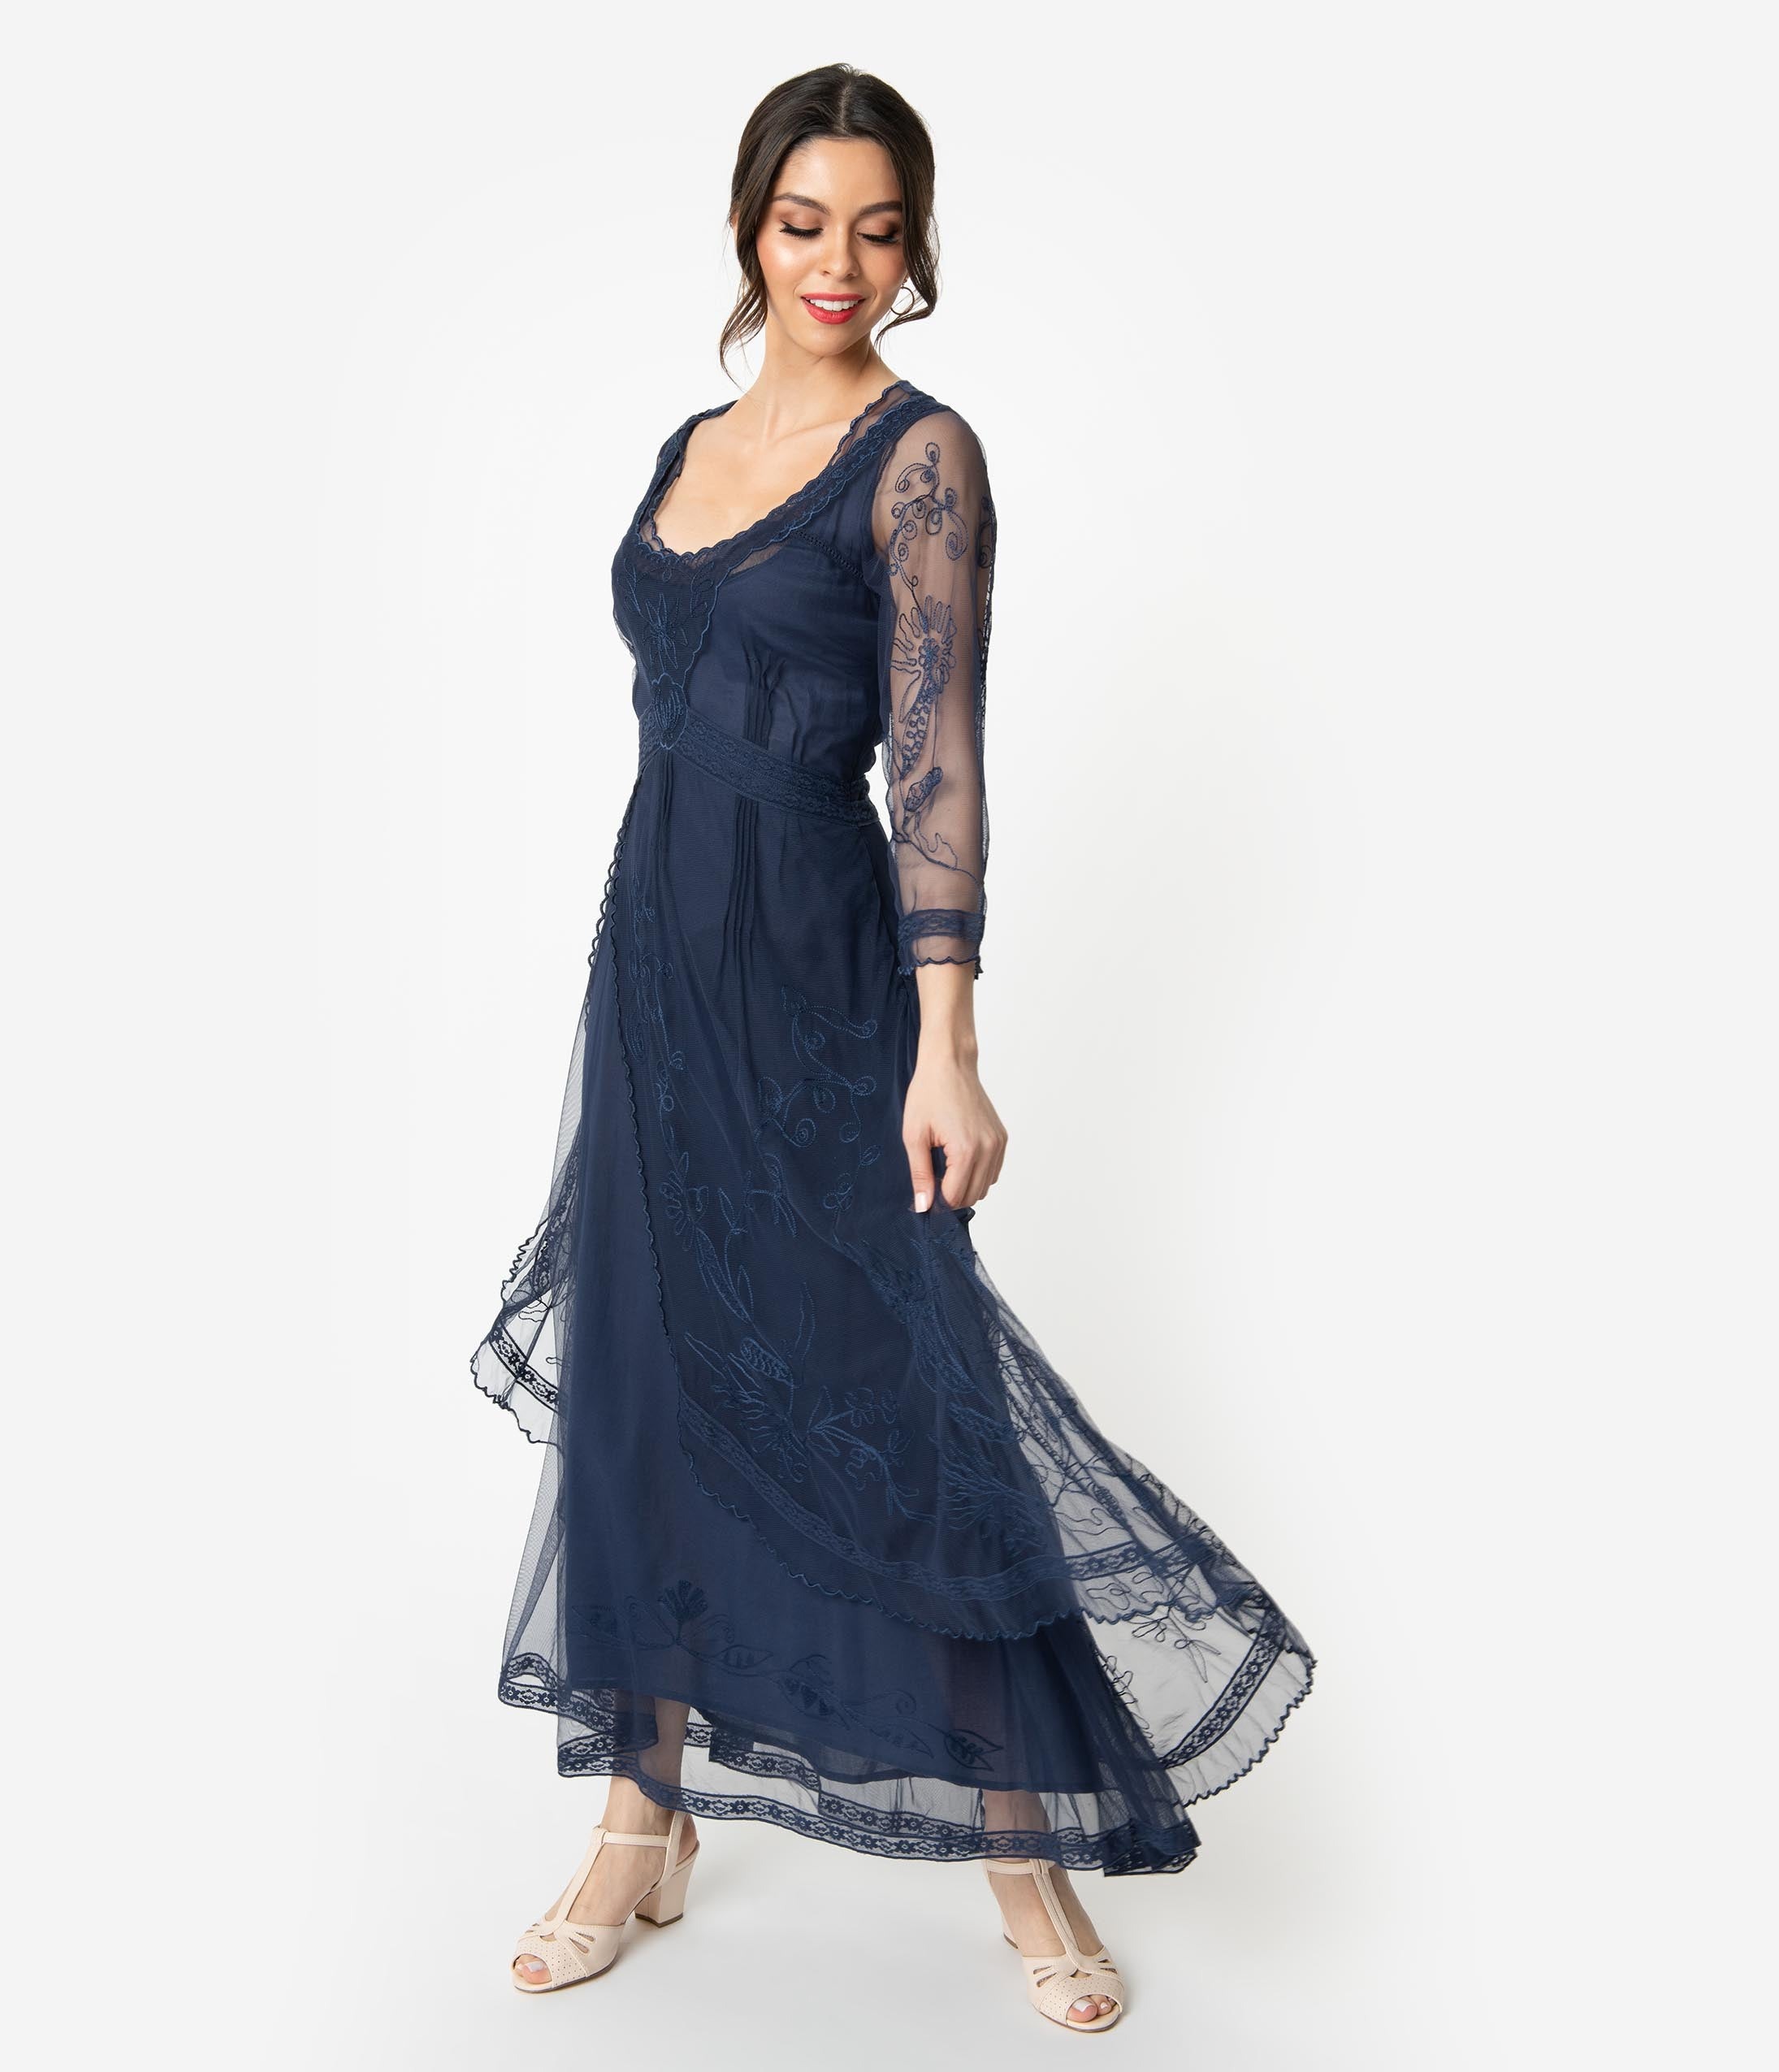 1920s Fashion & Clothing | Roaring 20s Attire Royal Blue Embroidered Tulle Downton Abbey Edwardian Tea Party Flapper Dress $274.00 AT vintagedancer.com